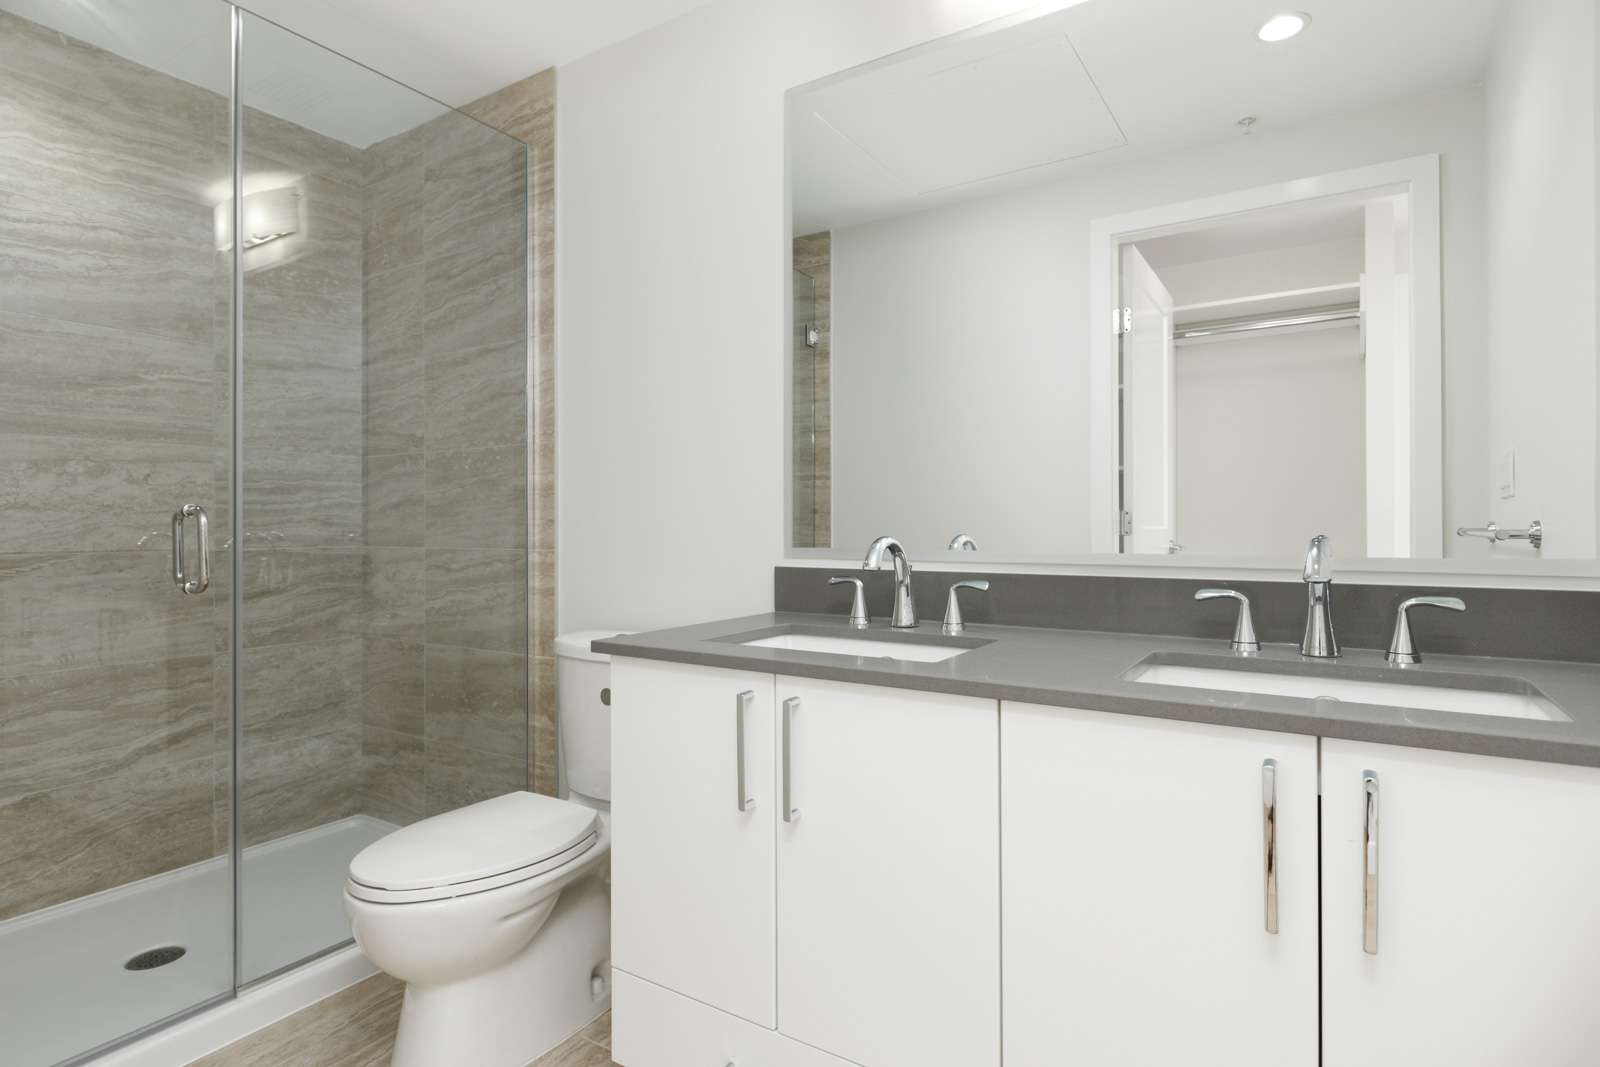 bathroom in condo with grey countertops mirrors grey tiles and toilet